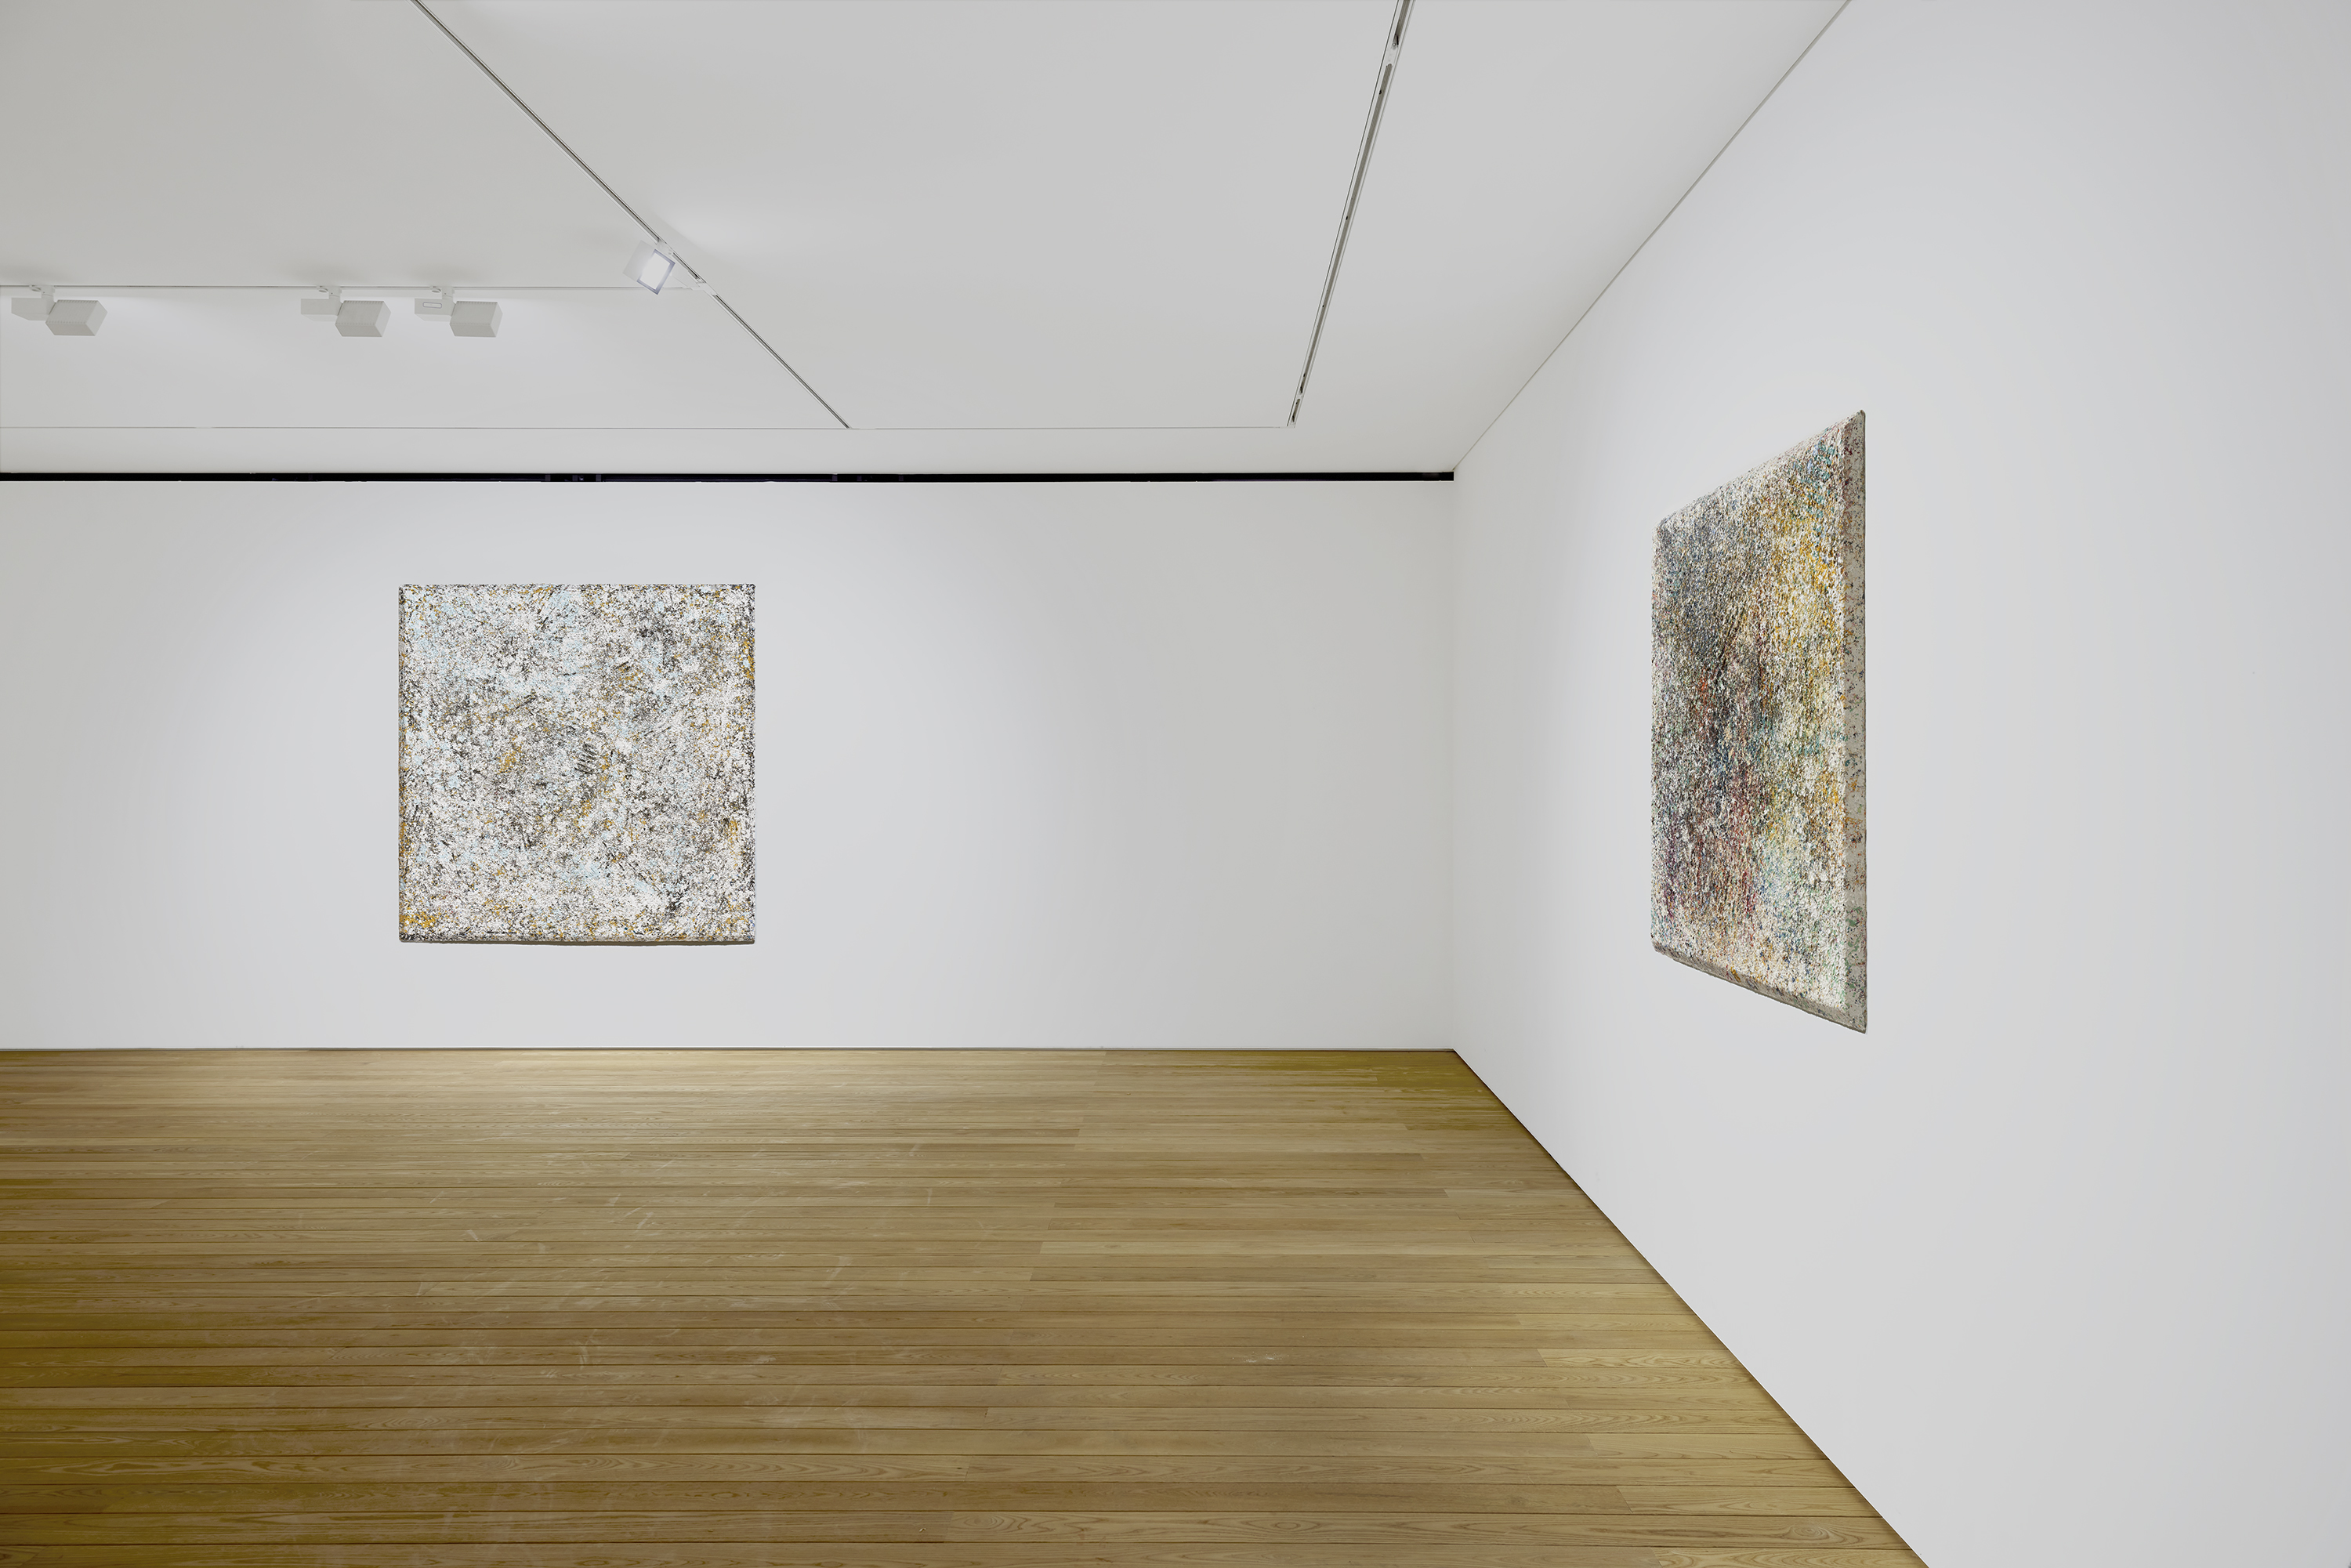 Installation view: Sam Gilliam 2-3/F, 267 Itaewon-ro, Yongsan-gu, Seoul May 27 – July 10, 2021. Photography courtesy of Pace Gallery.